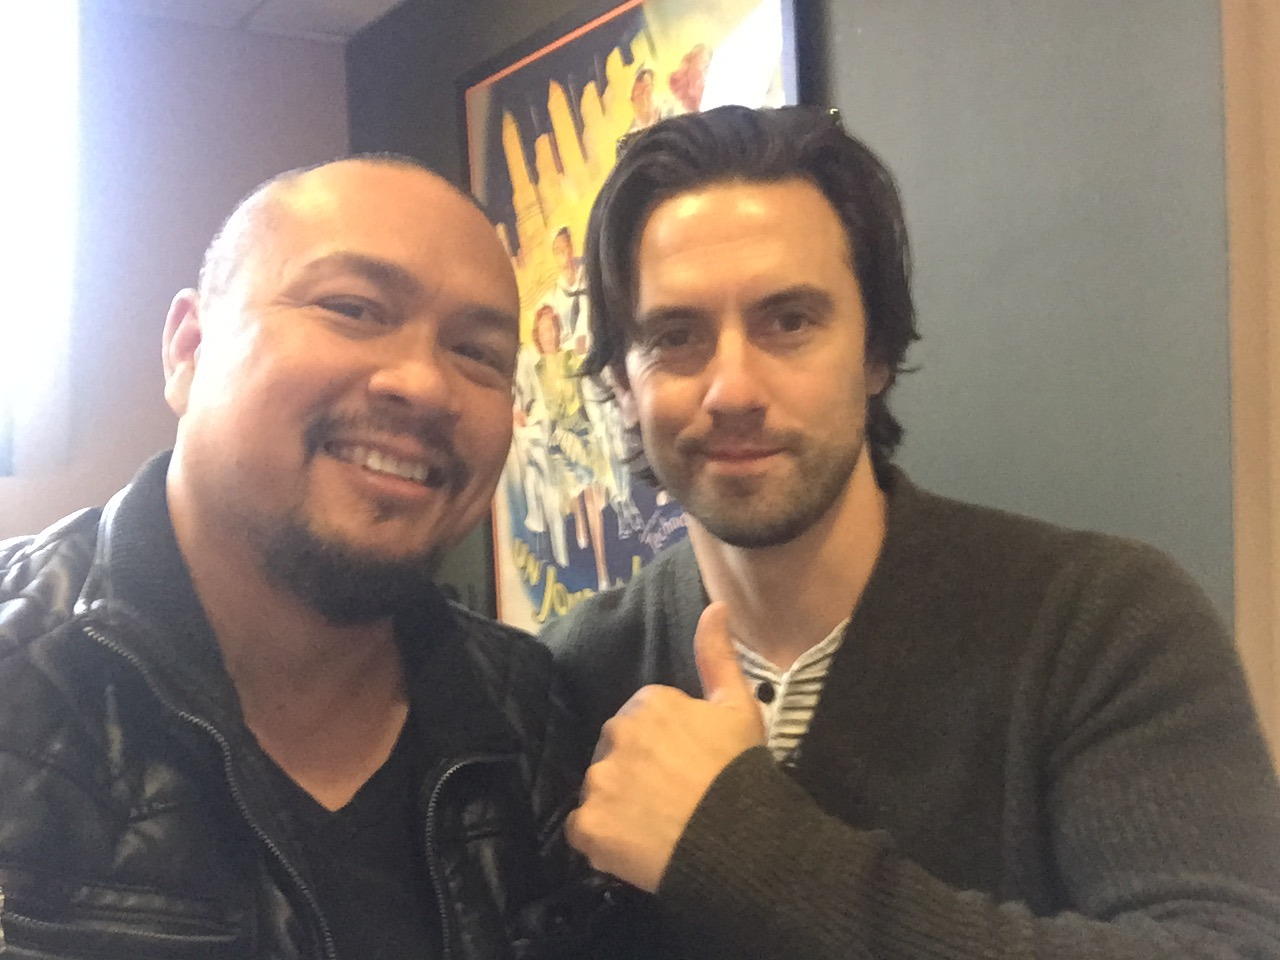 Crispin Alapag and the super talented Milo Ventimiglia #ThisIsUs #NBC